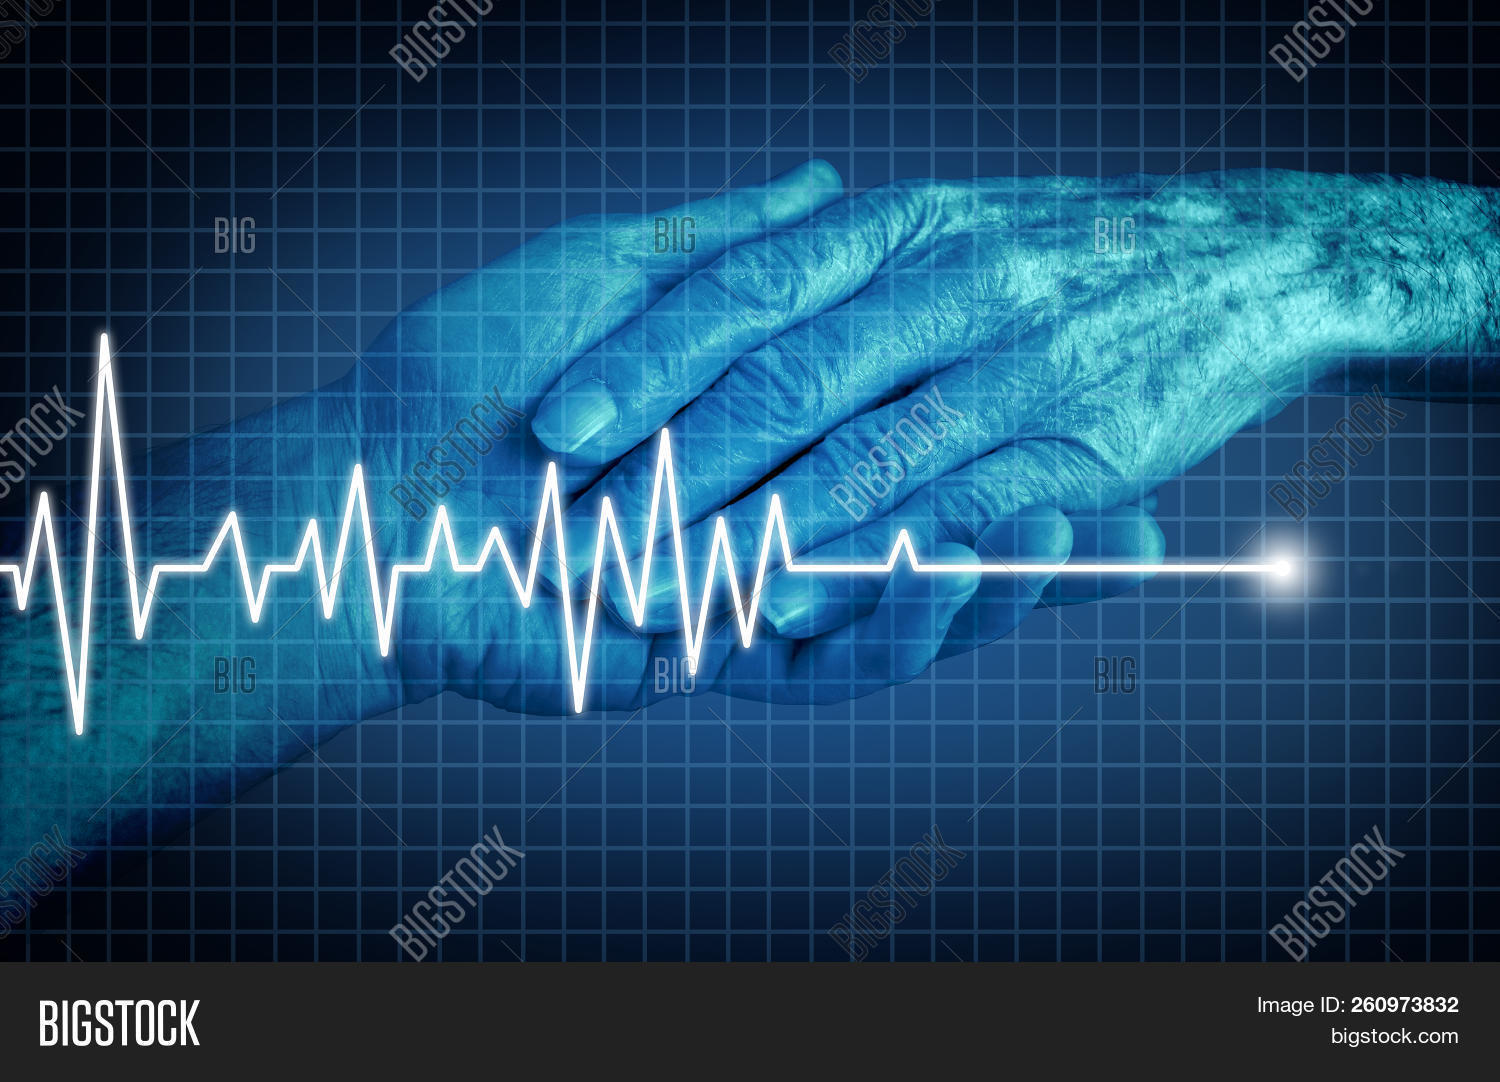 3D,ECG,EKG,Lethal,and,assisted,cancer,care,chart,concept,death,diagnosis,die,doctor,down,end,ending,ethics,euthanasia,flatline,grid,health,illness,illustration,injection,issues,killing,law,life,line,loss,medical,medicine,mercy,monitor,murder,of,pain,patient,putting,right,sentence,social,style,suffering,suicide,terminal,termination,to